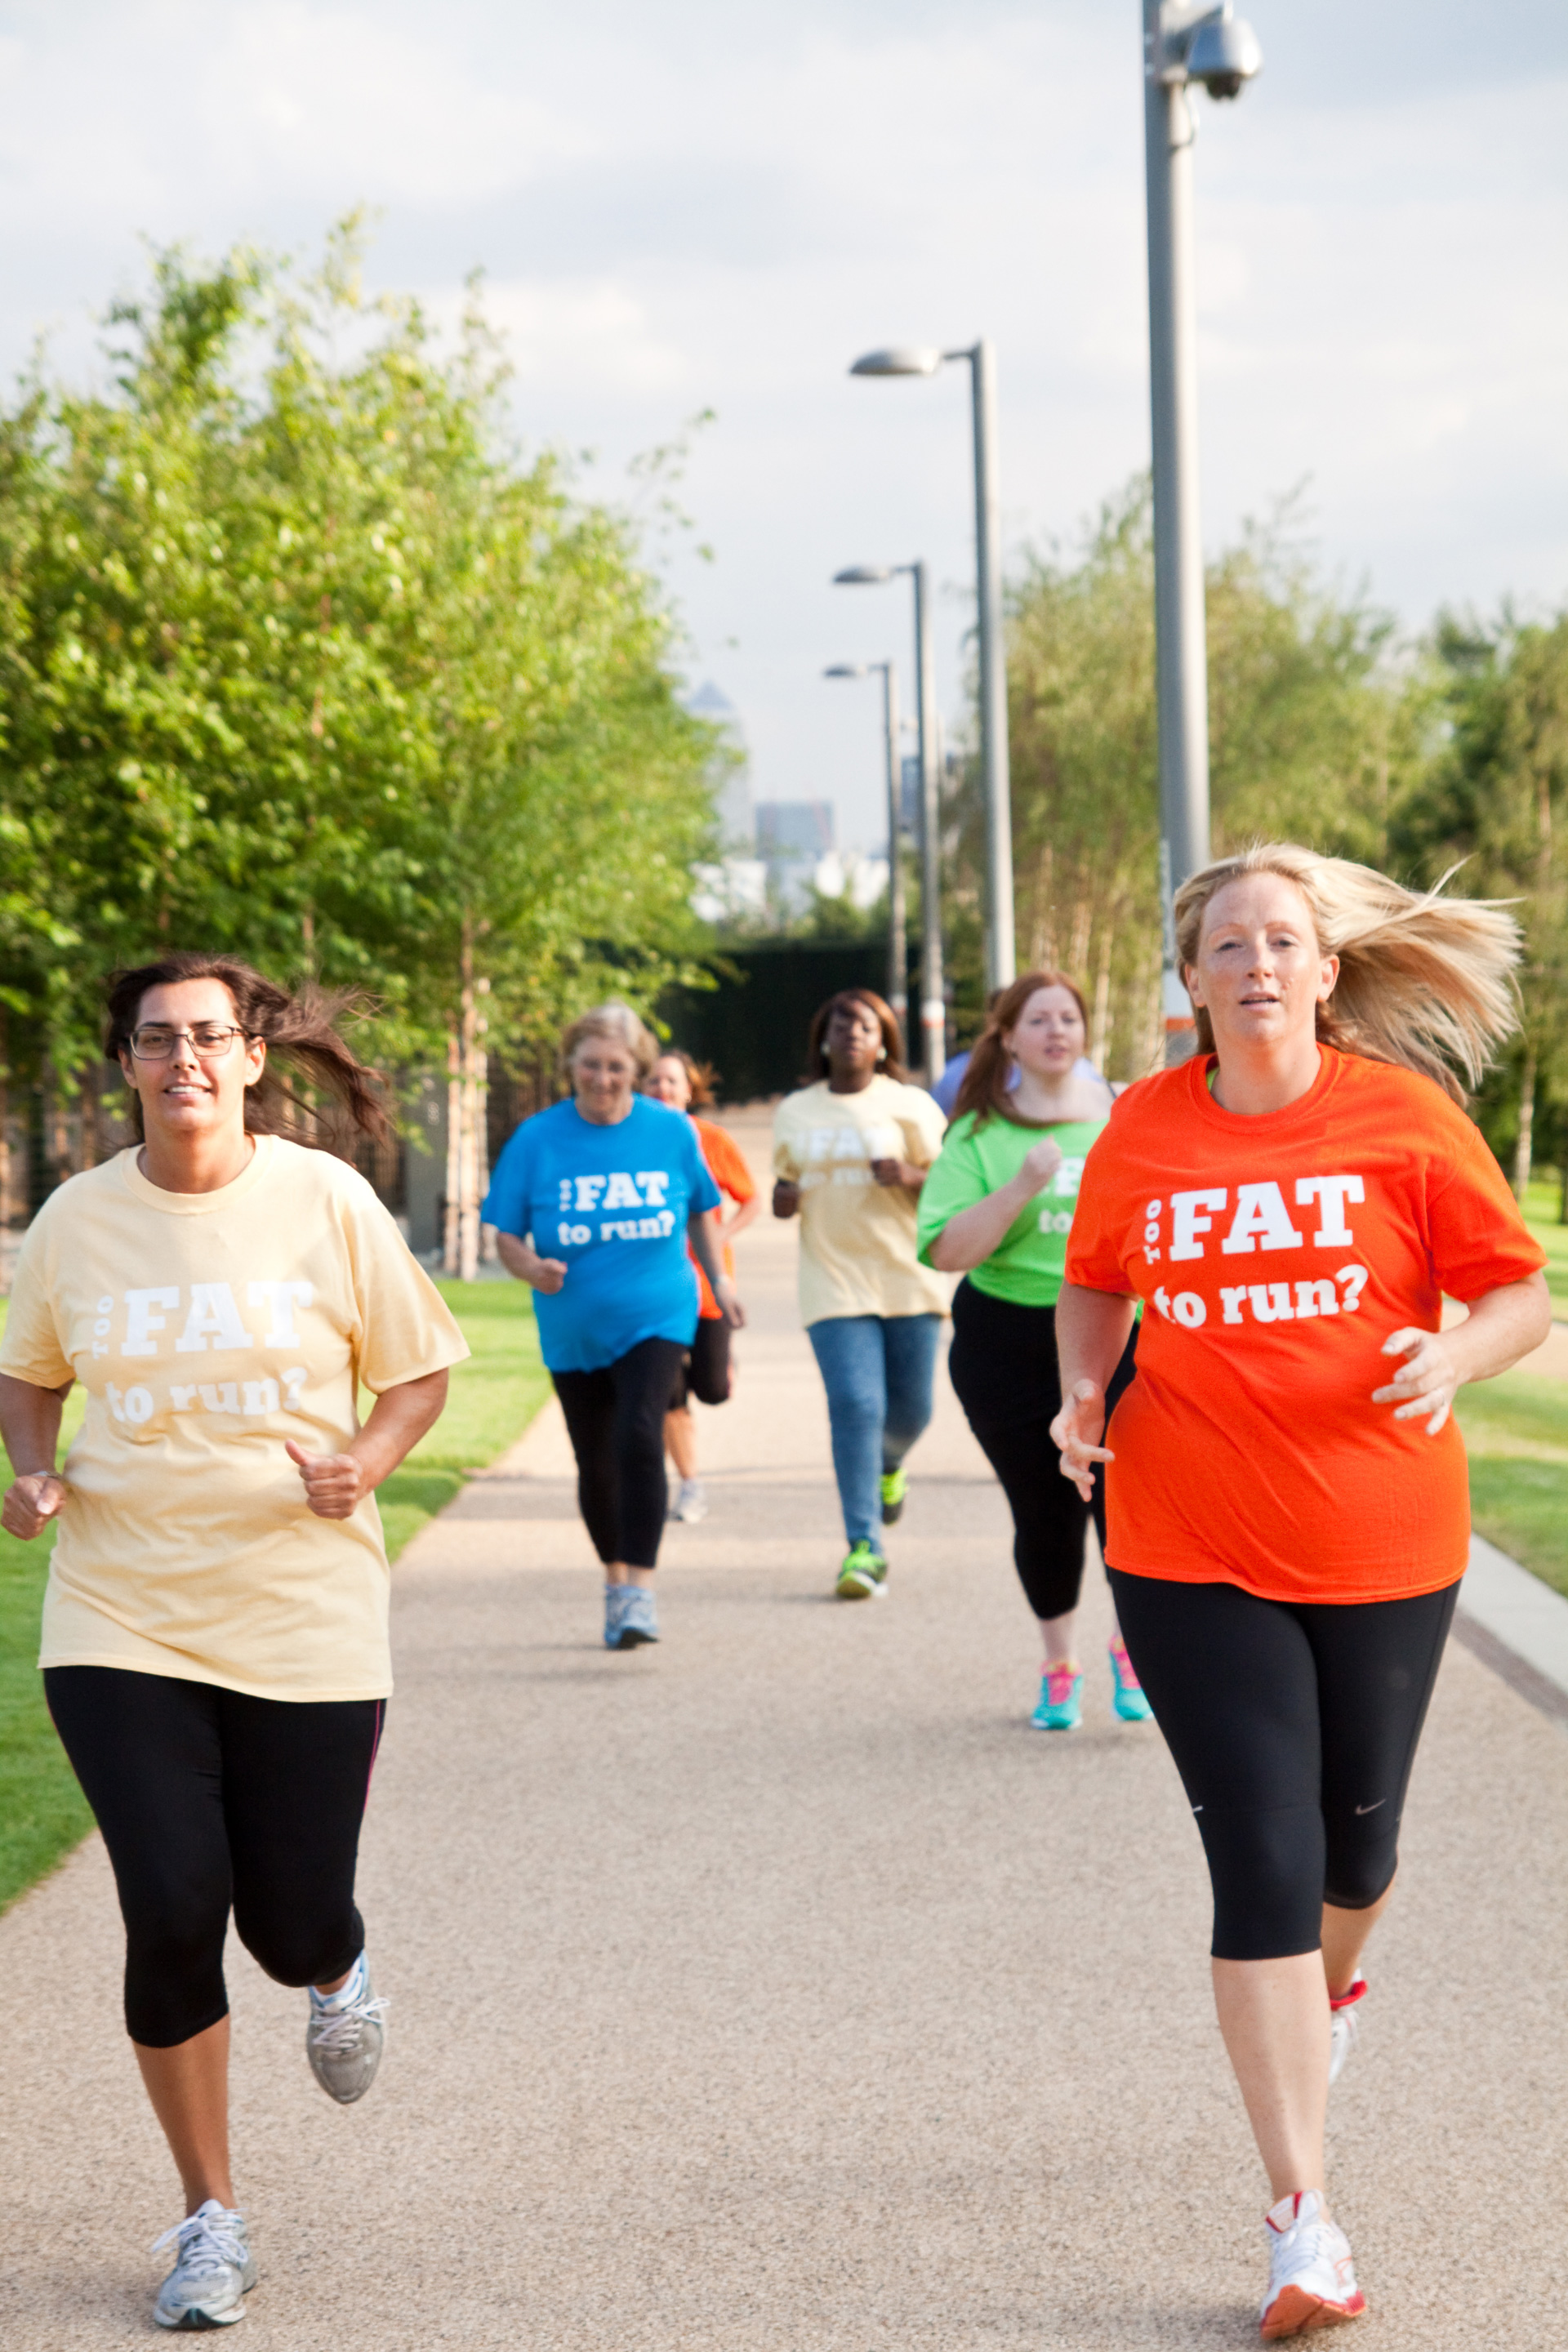 They said she was too fat to run, so she put it on a T-shirt